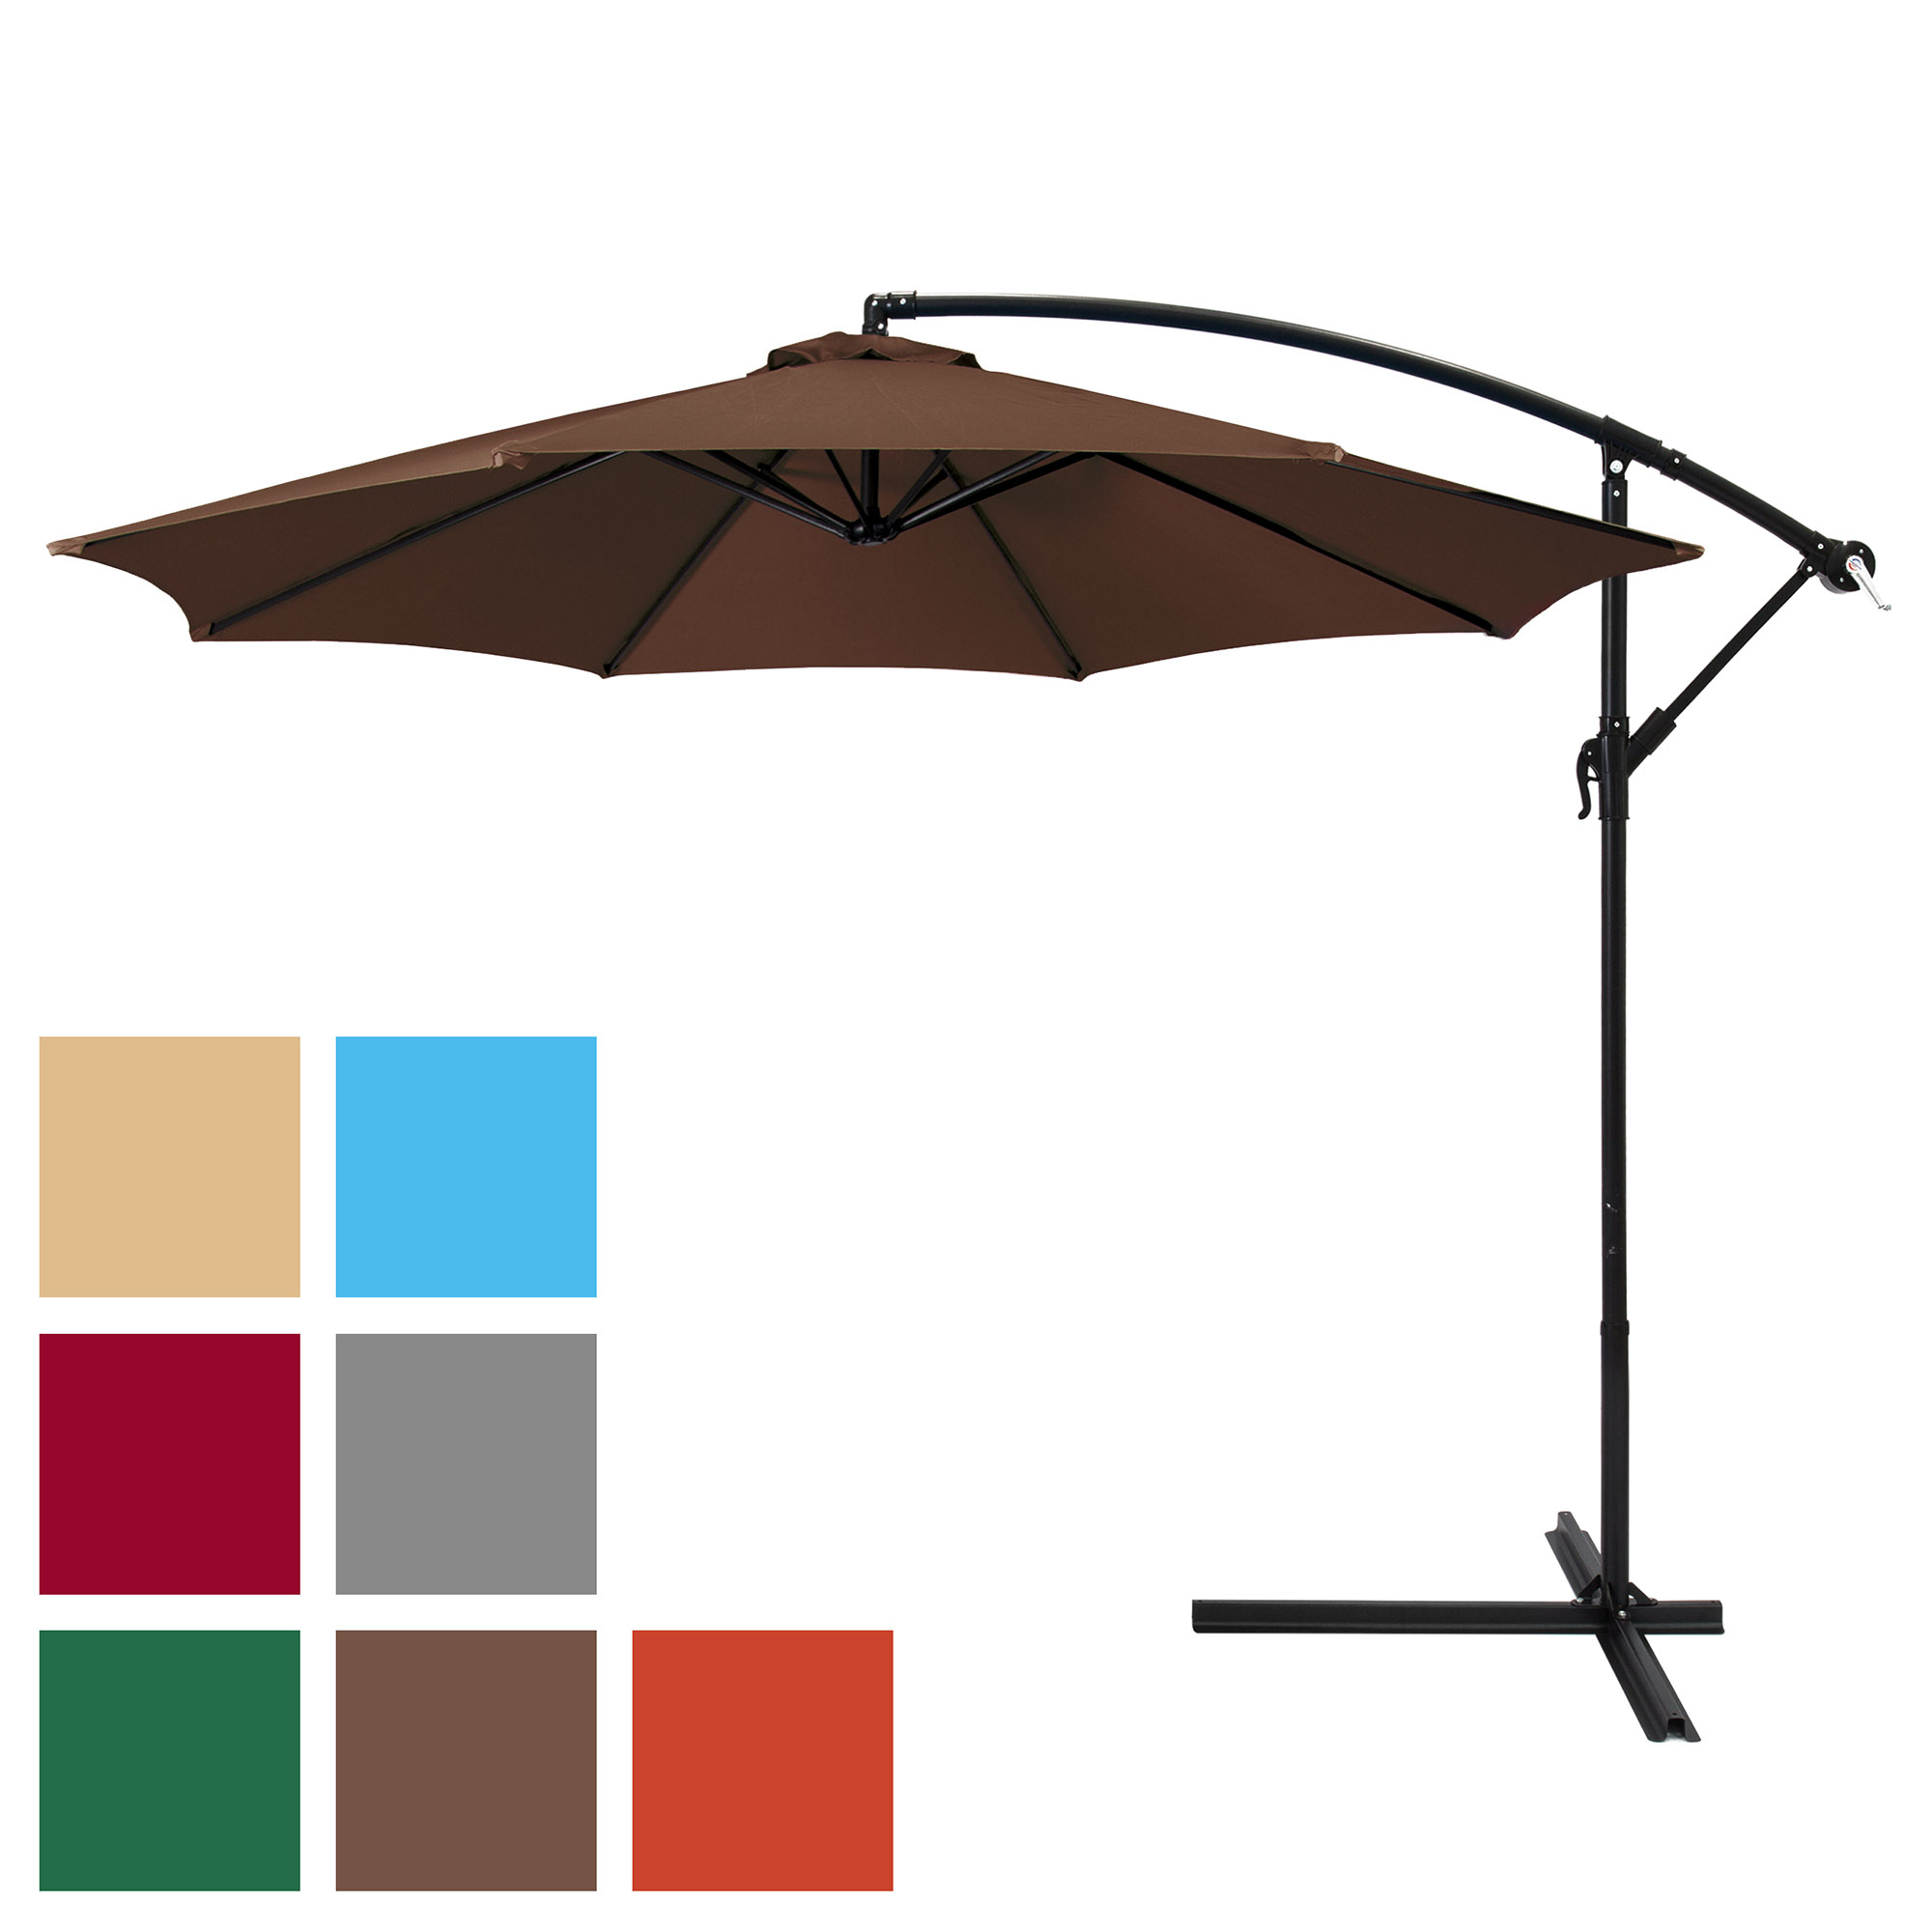 Widely Used Best Choice Products 10ft Offset Hanging Market Patio Umbrella W/ Easy Tilt Adjustment, Polyester Shade, 8 Ribs For Backyard, Poolside, Lawn And With Priscilla Market Umbrellas (View 12 of 20)